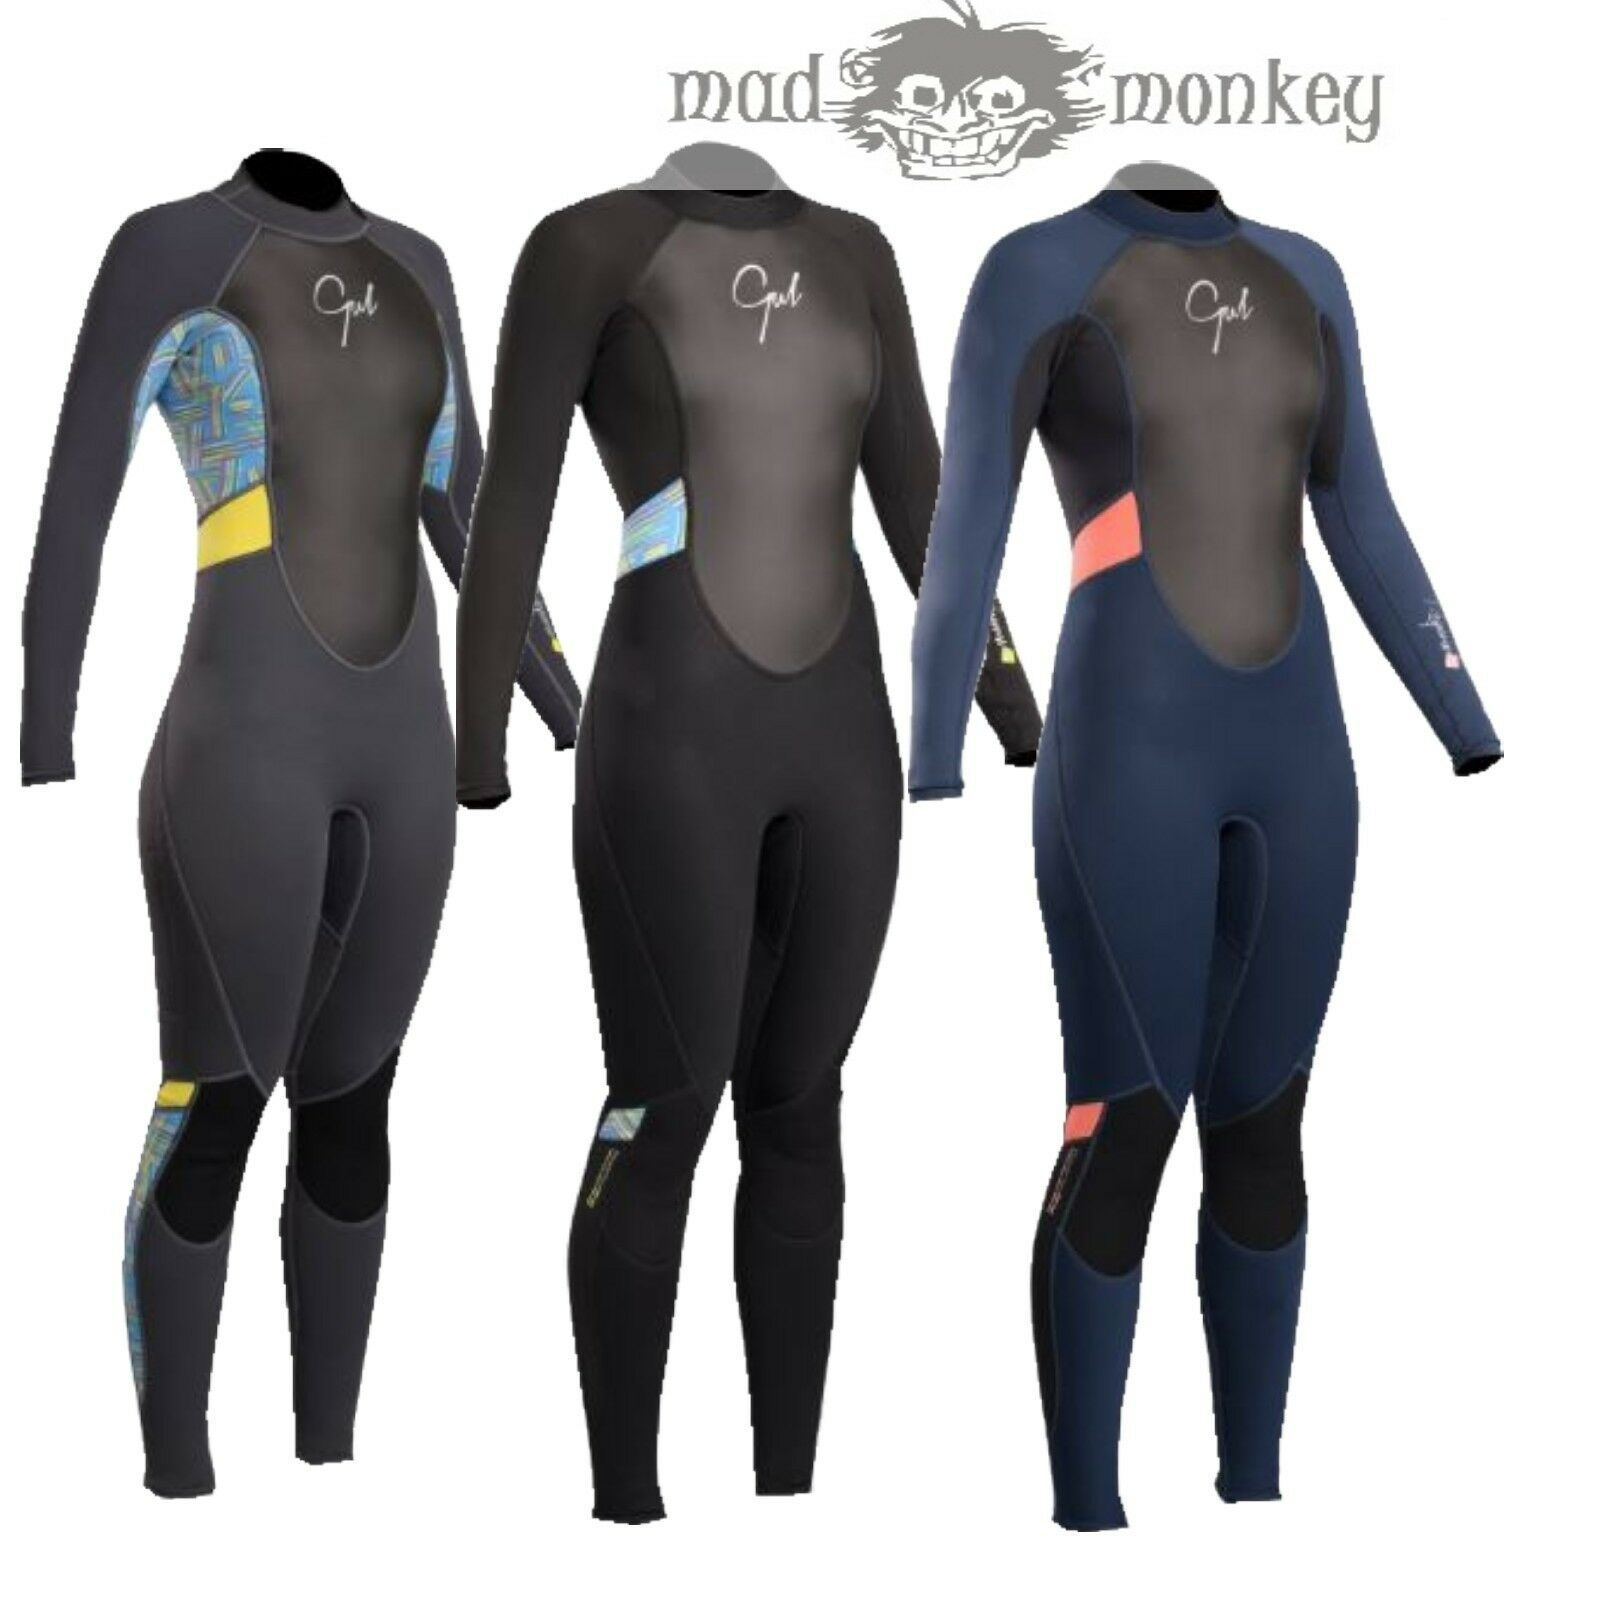 GUL RESPONSE LADIES 3 2MM FL WETSUIT - steamer 3mm kayak jetski diving scuba